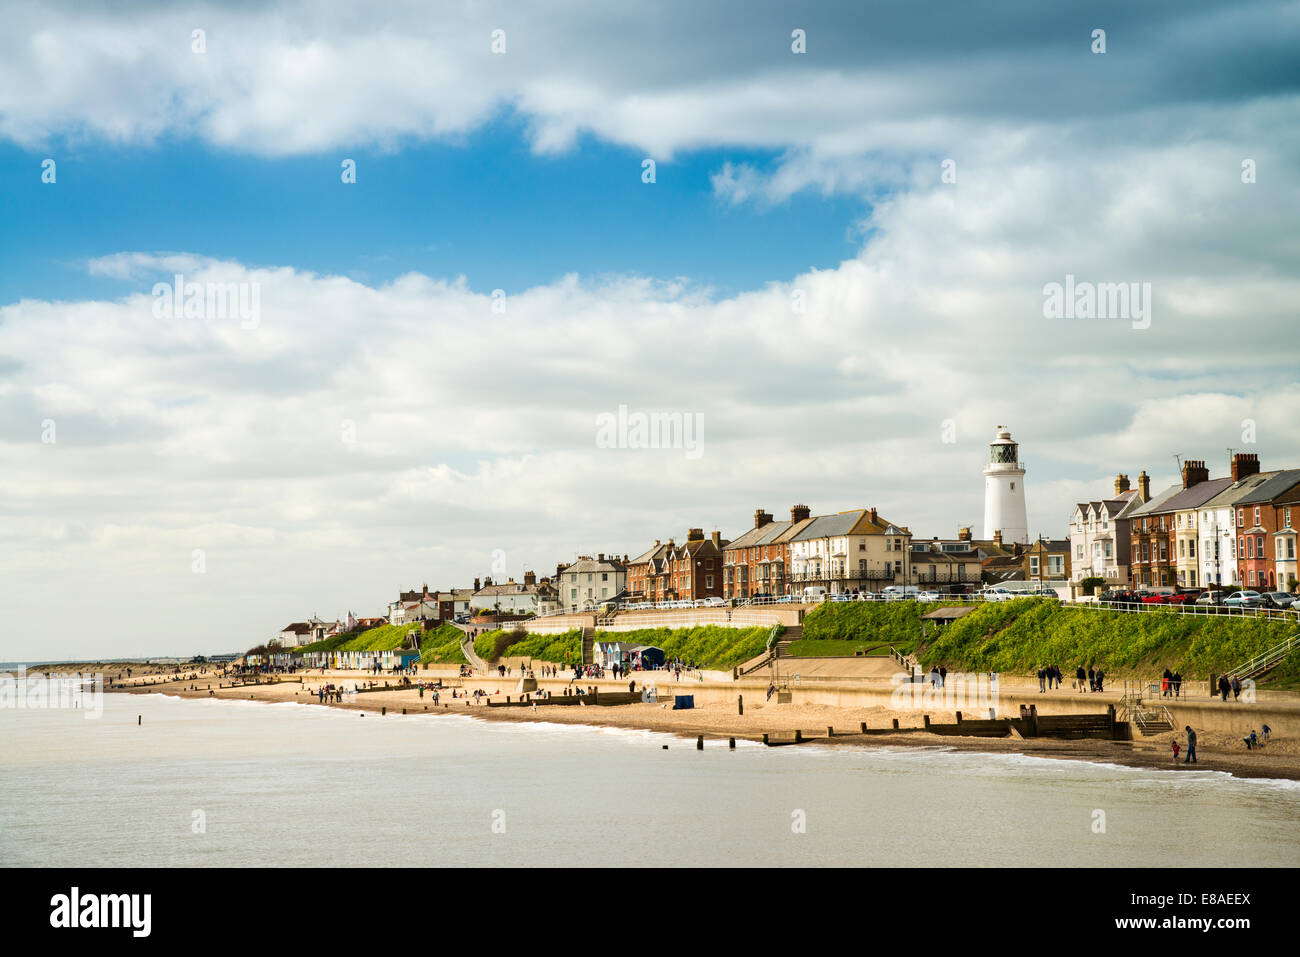 A view from the pier towards Southwold, Suffolk, UK - Stock Image